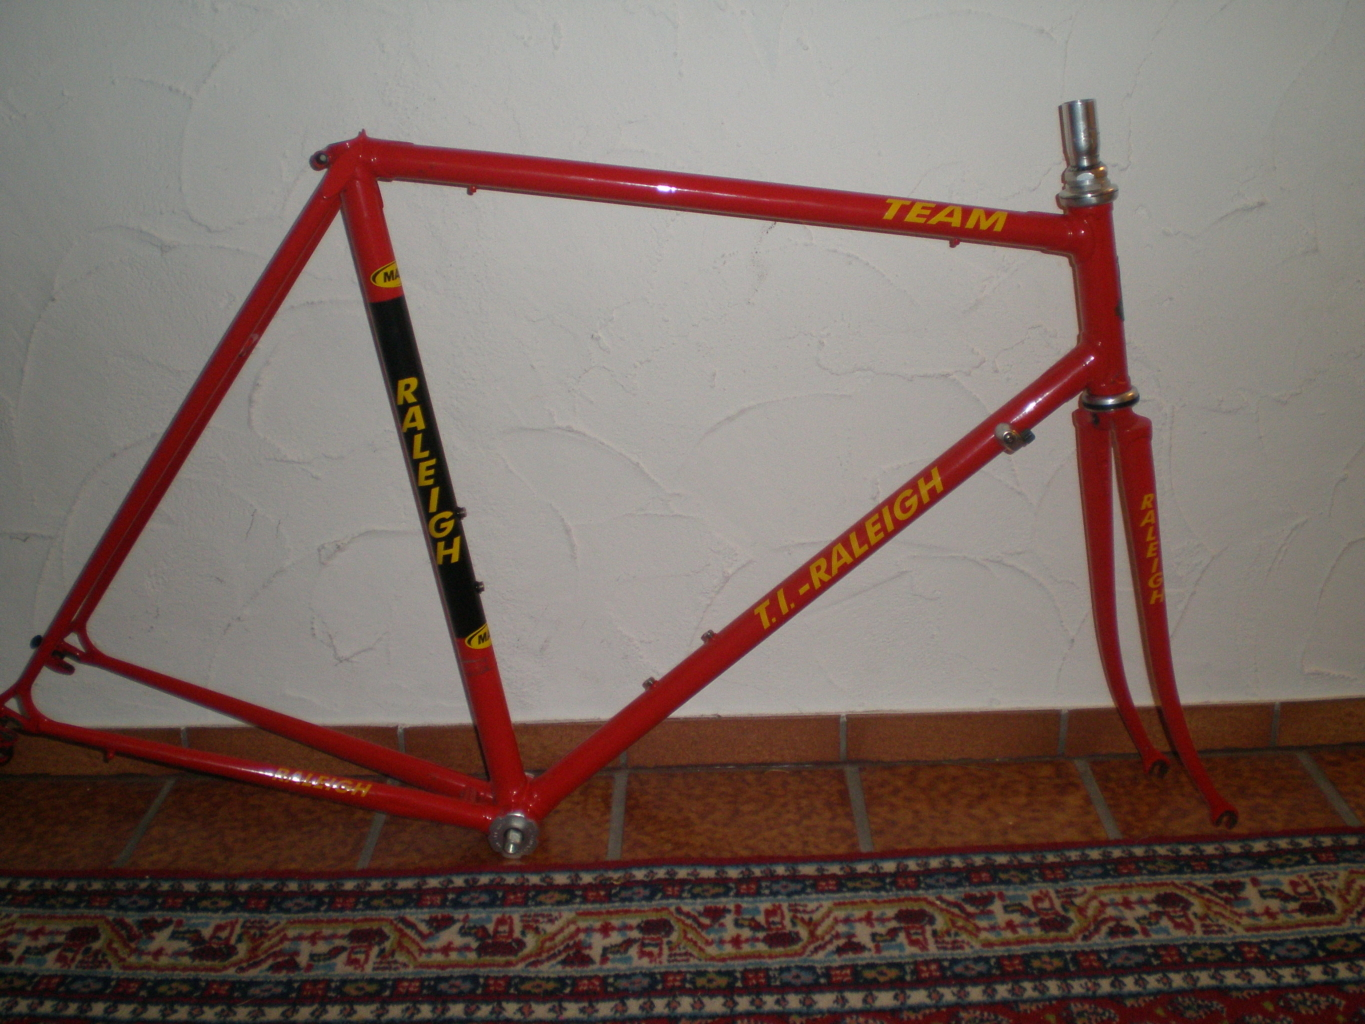 Raleigh-didi-thurau-team-pro-sb-reynolds753-ilkeston